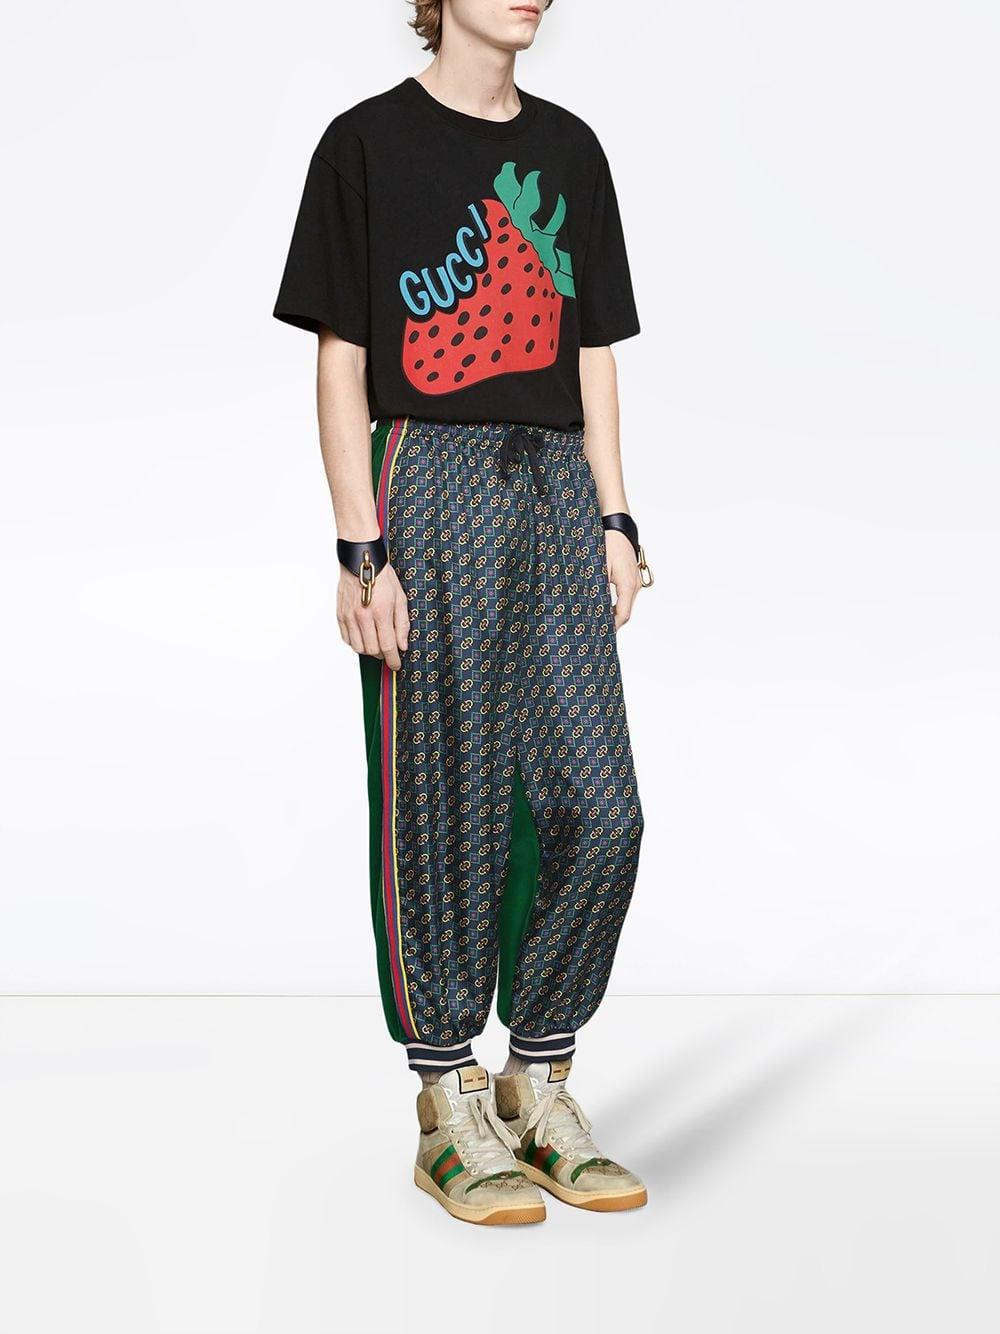 72a2b70c9 Gucci T-shirt With Strawberry Print in Black for Men - Save 49% - Lyst